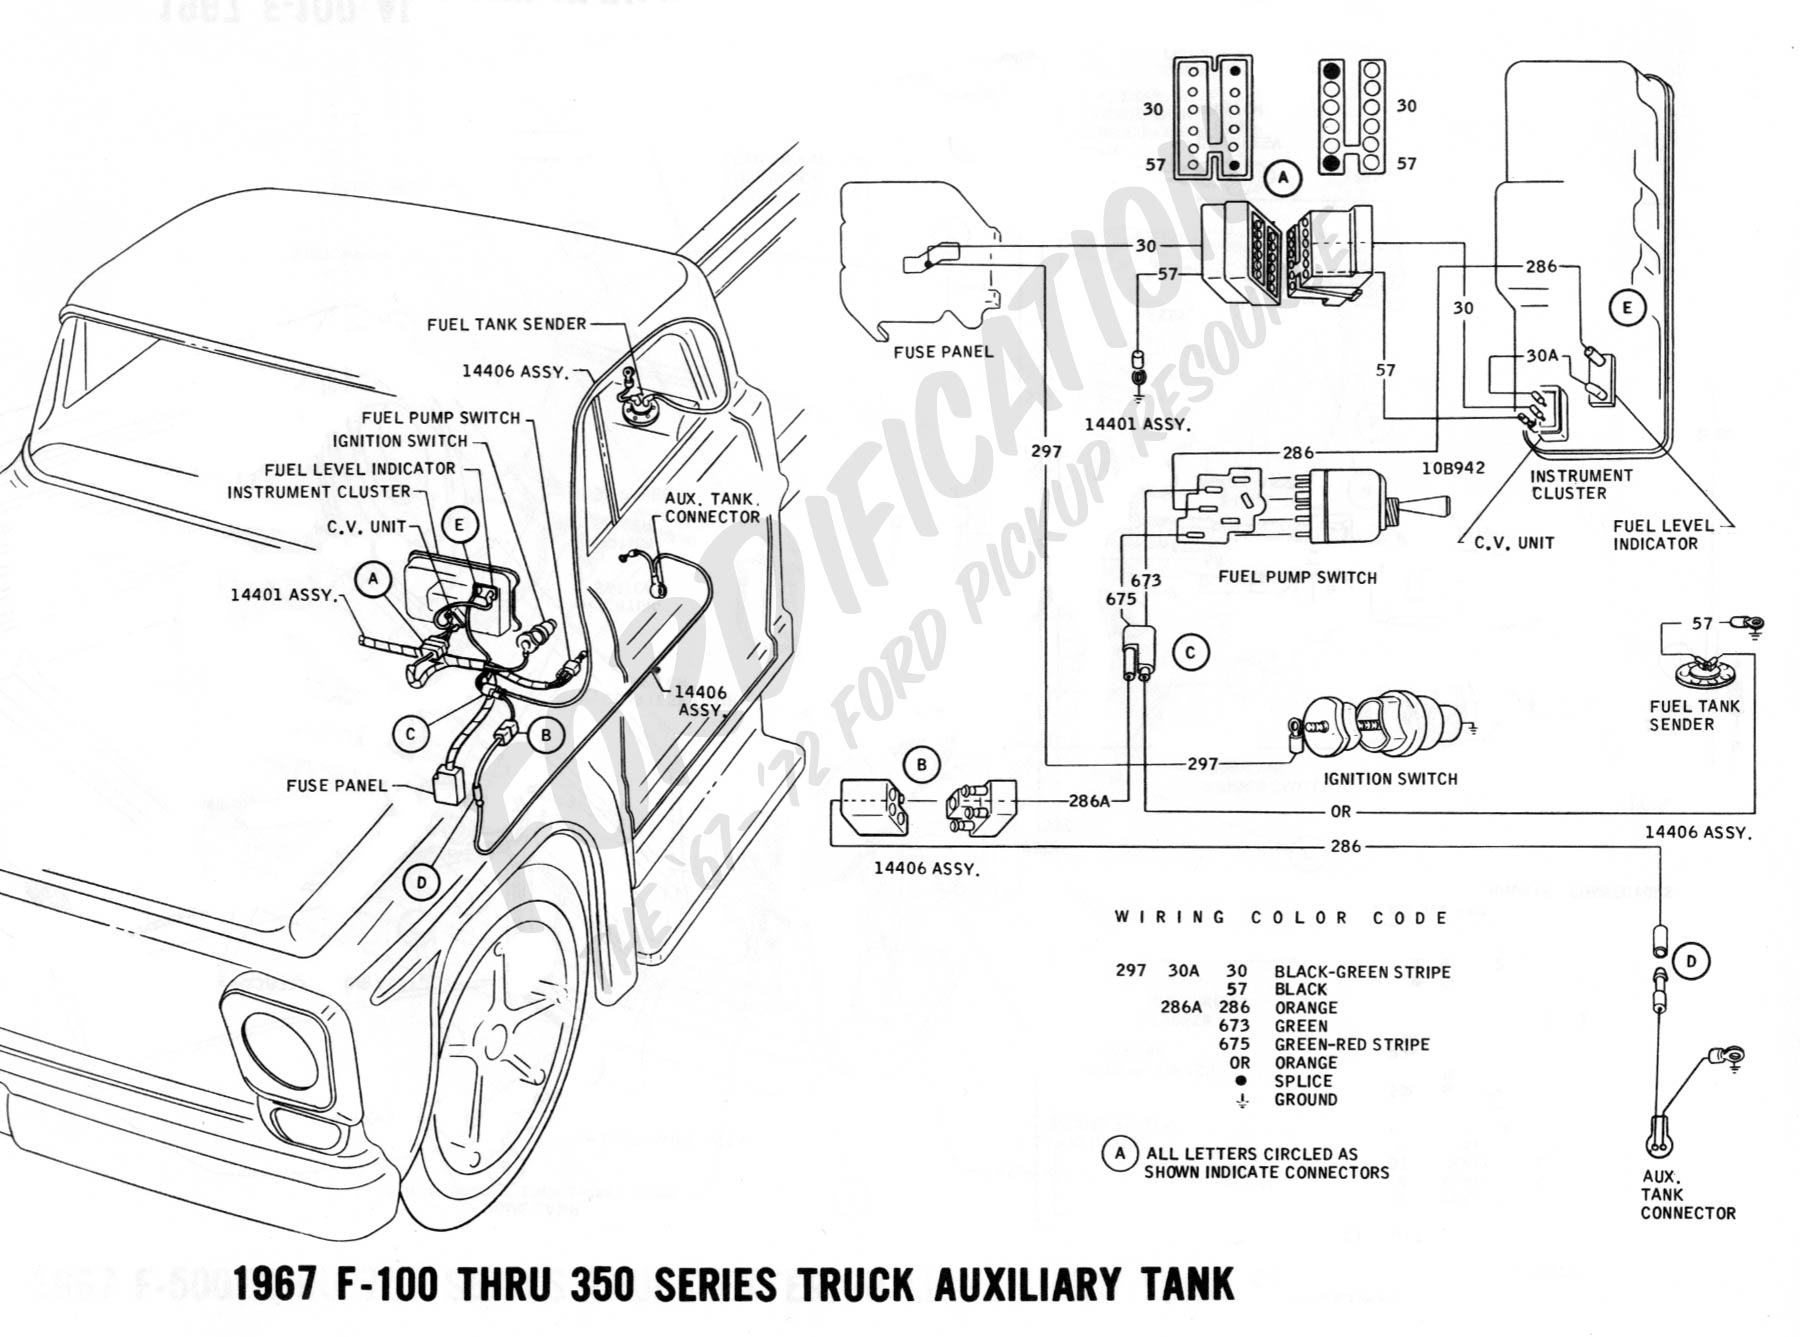 1990 ford truck wiring diagram   30 wiring diagram images